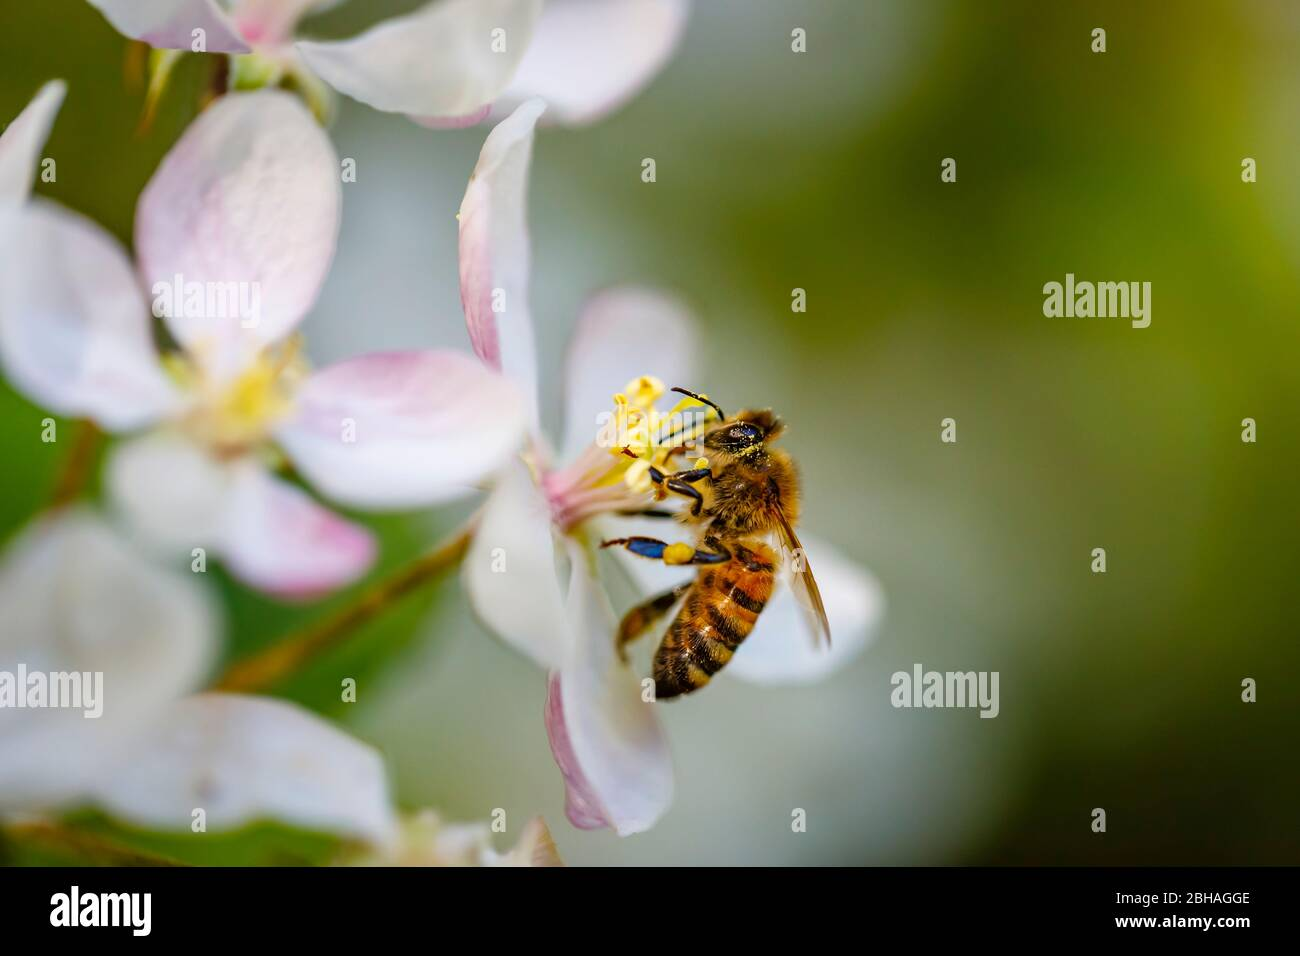 Minibeast: A honey bee, Apis mellifera, collecting nectar and pollen from the stamens of white apple tree blossom in spring, Surrey Stock Photo